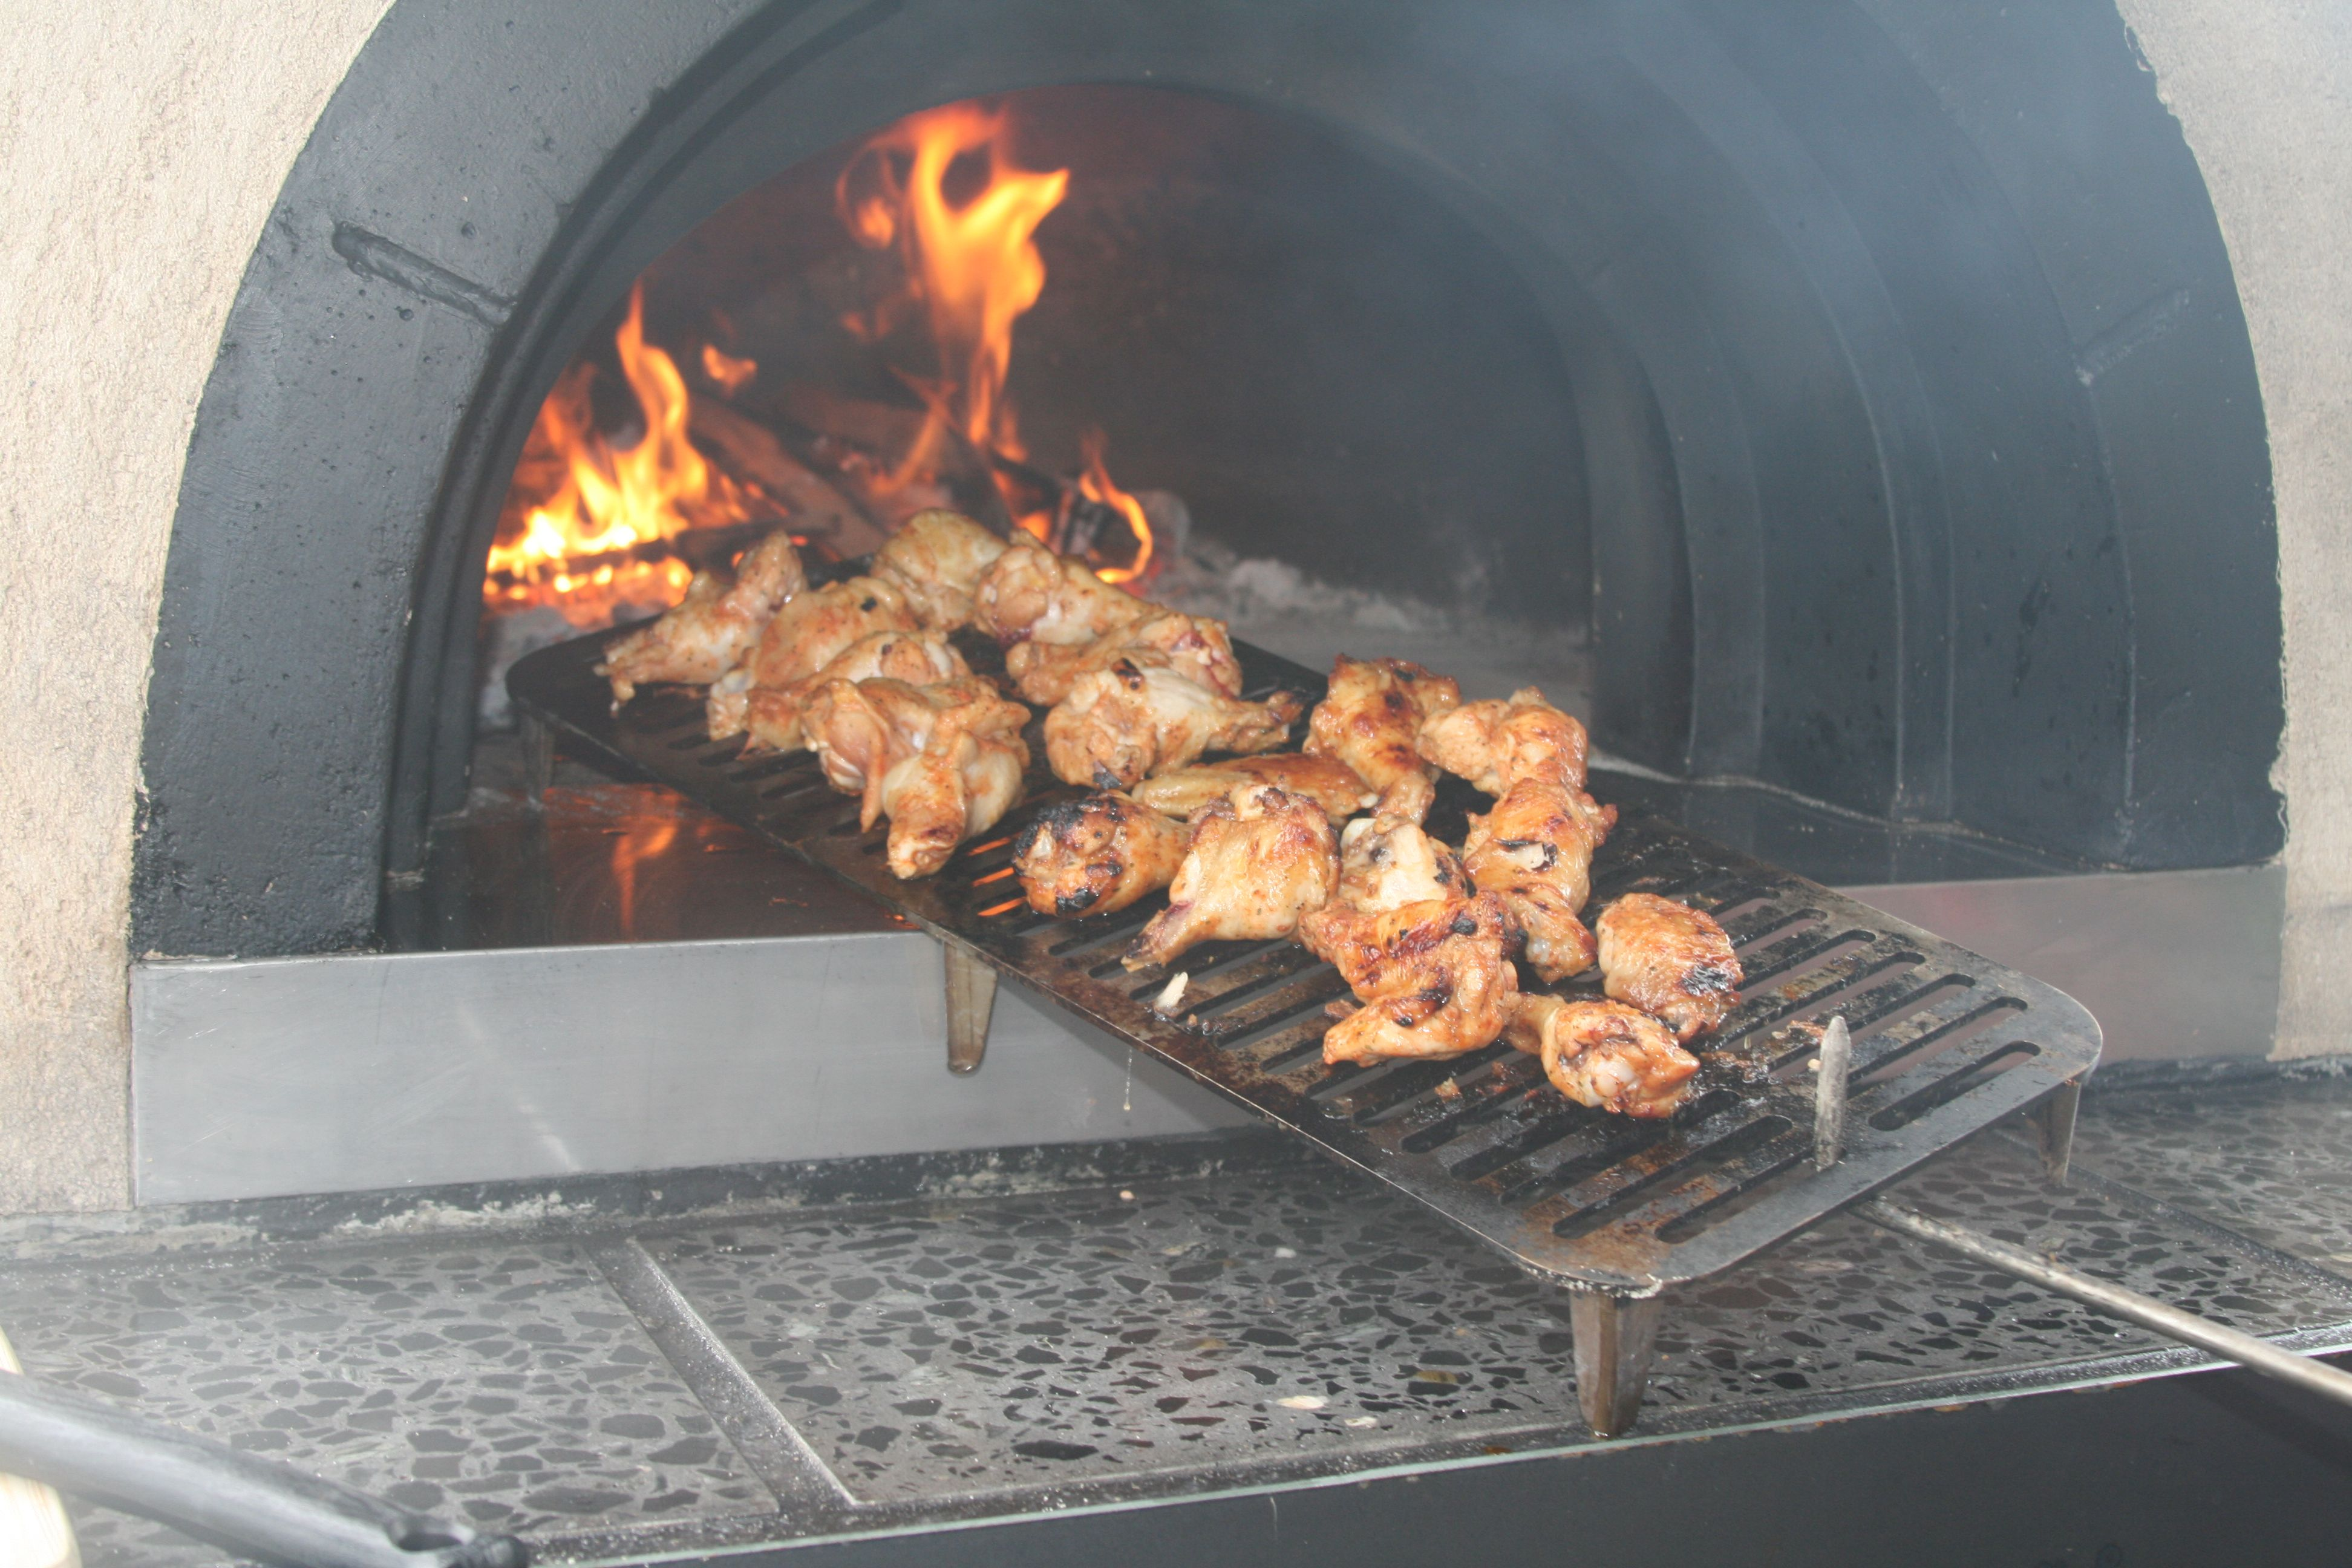 finger lickin good cooked chicken on a trendz pizza oven delicious